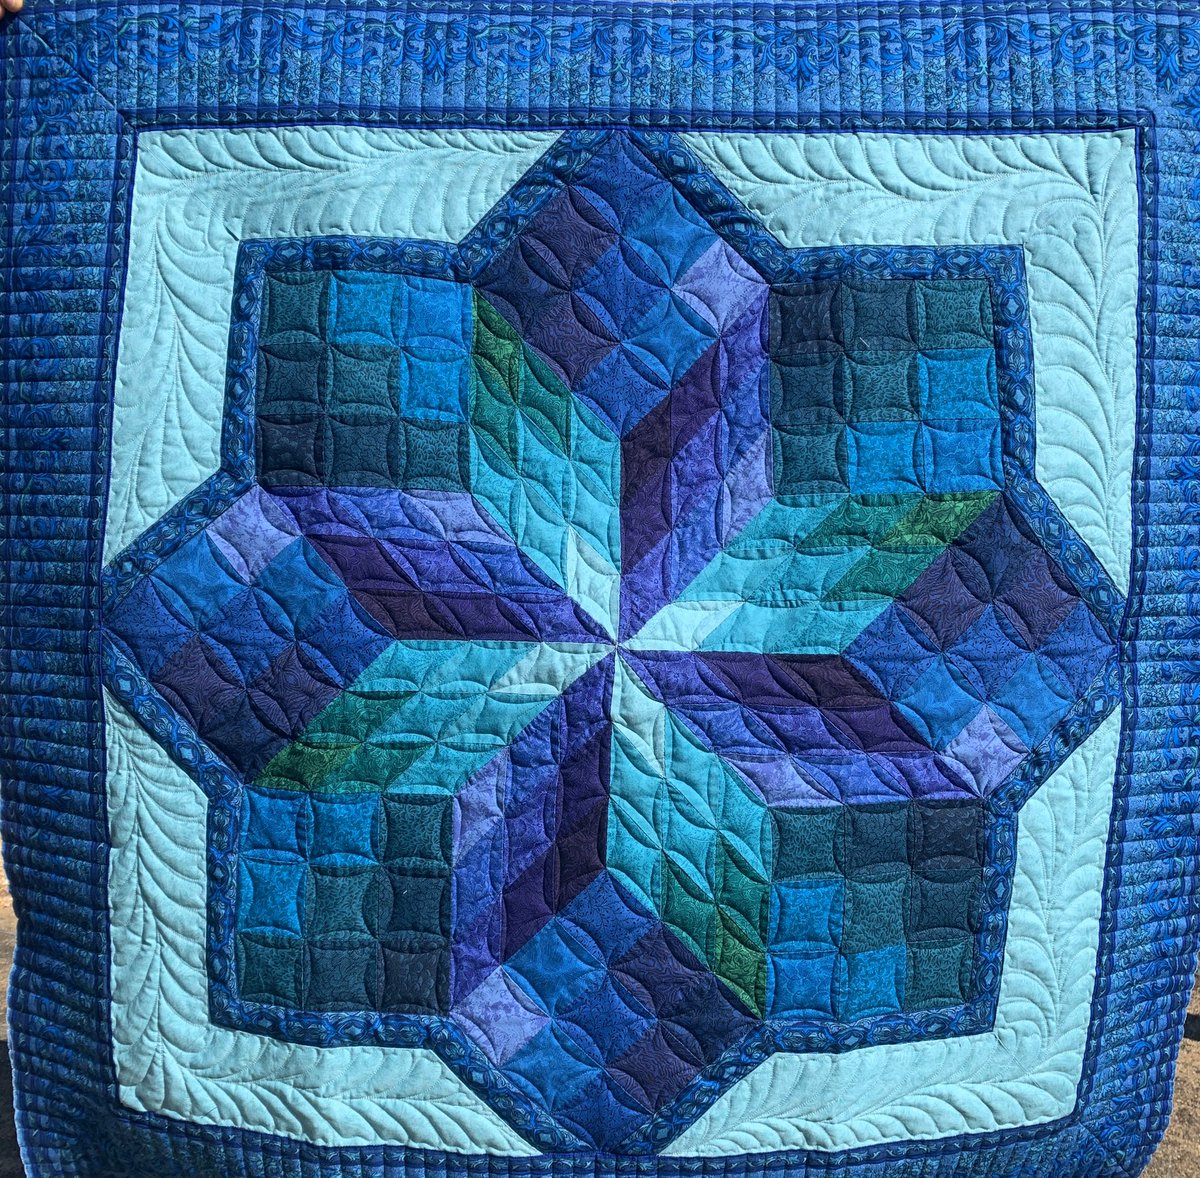 This Jinny Beyer Stained Glass Star Wall Hanging just came off the Longarm. All hand guided custom quilting with Quilters Dream Batting wool batting to show the piecing and quilting to perfection! #jinnybeyerstudio #stainedglasssyarquilt #customquilting  #battgirls https://t.co/Ojy4Xnu95Q